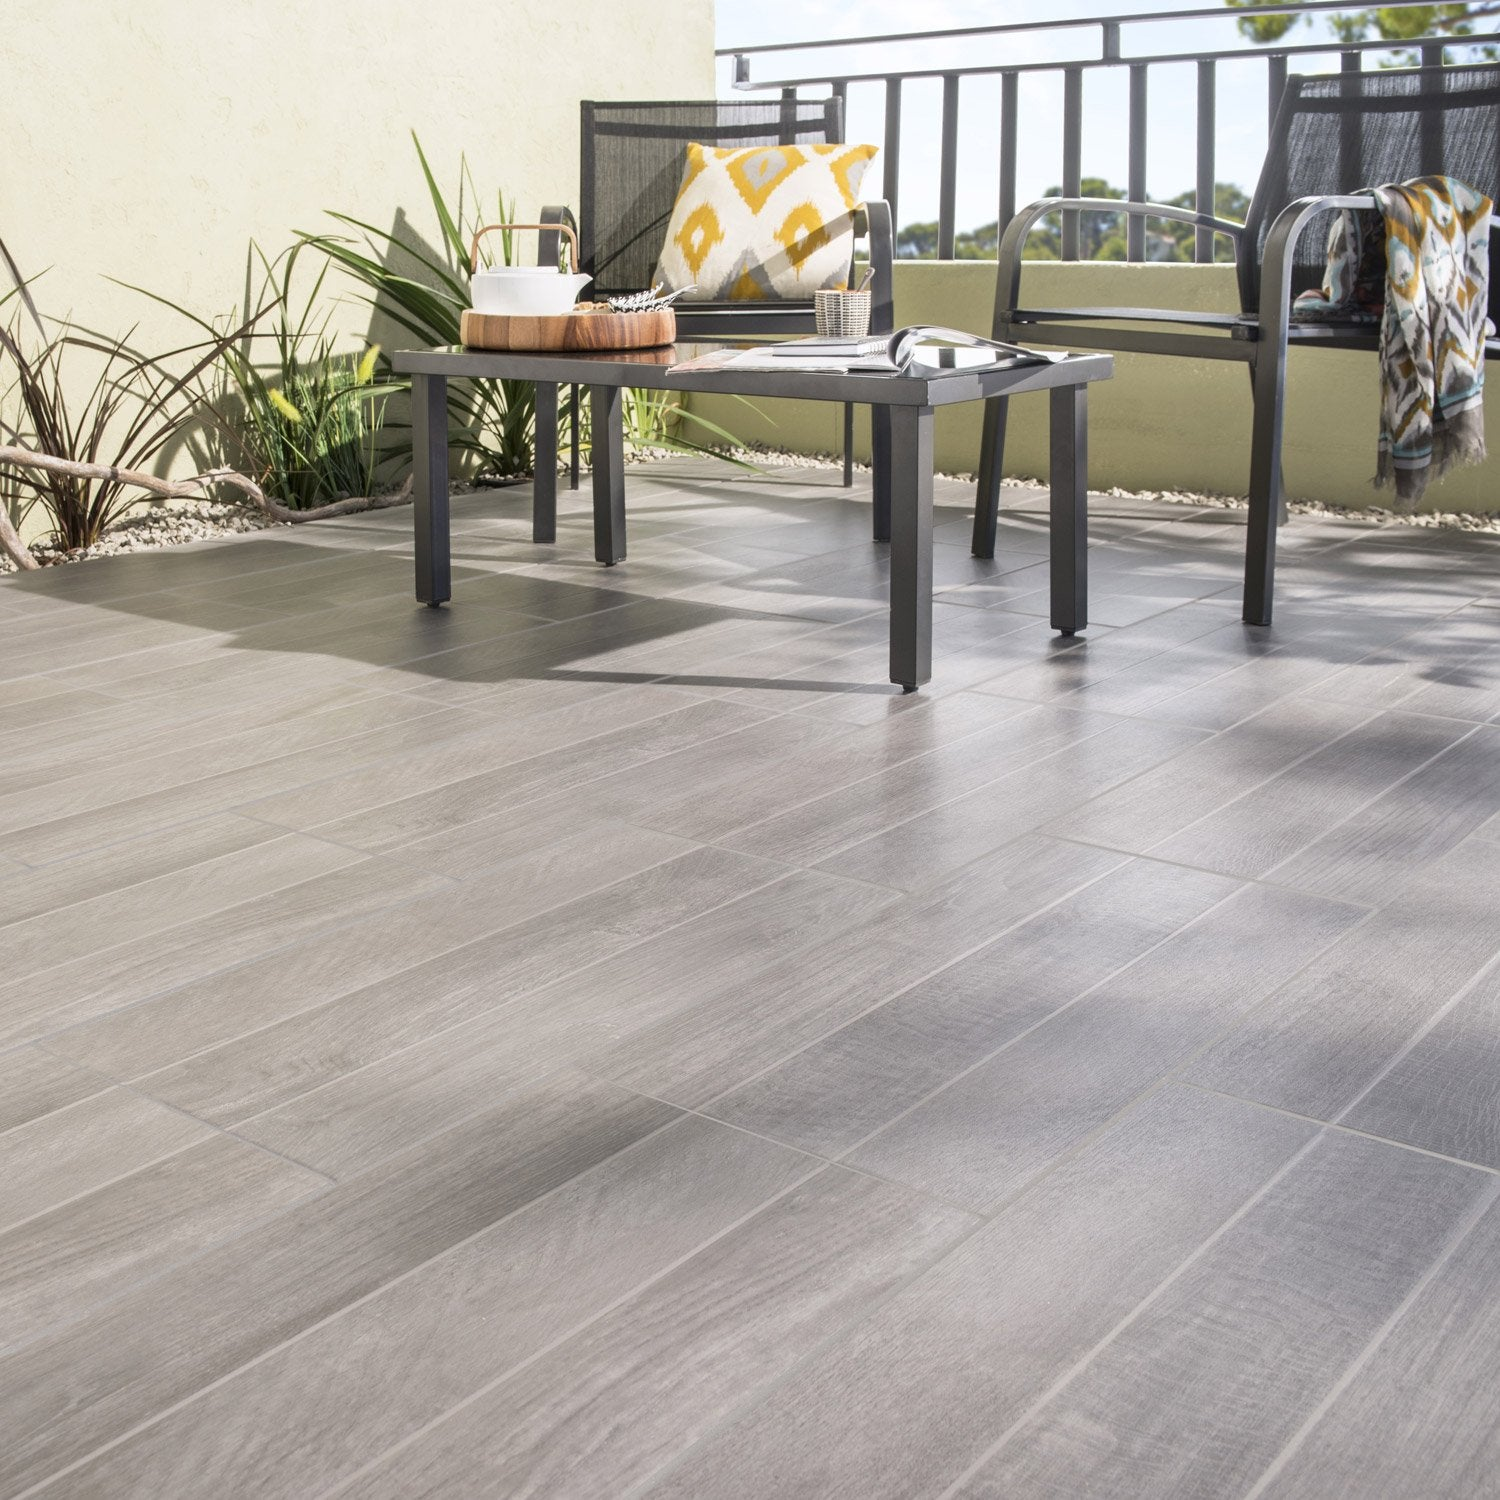 Carrelage sol anthracite effet bois jungle x cm leroy merlin - Carrelage terrasse leroy merlin ...